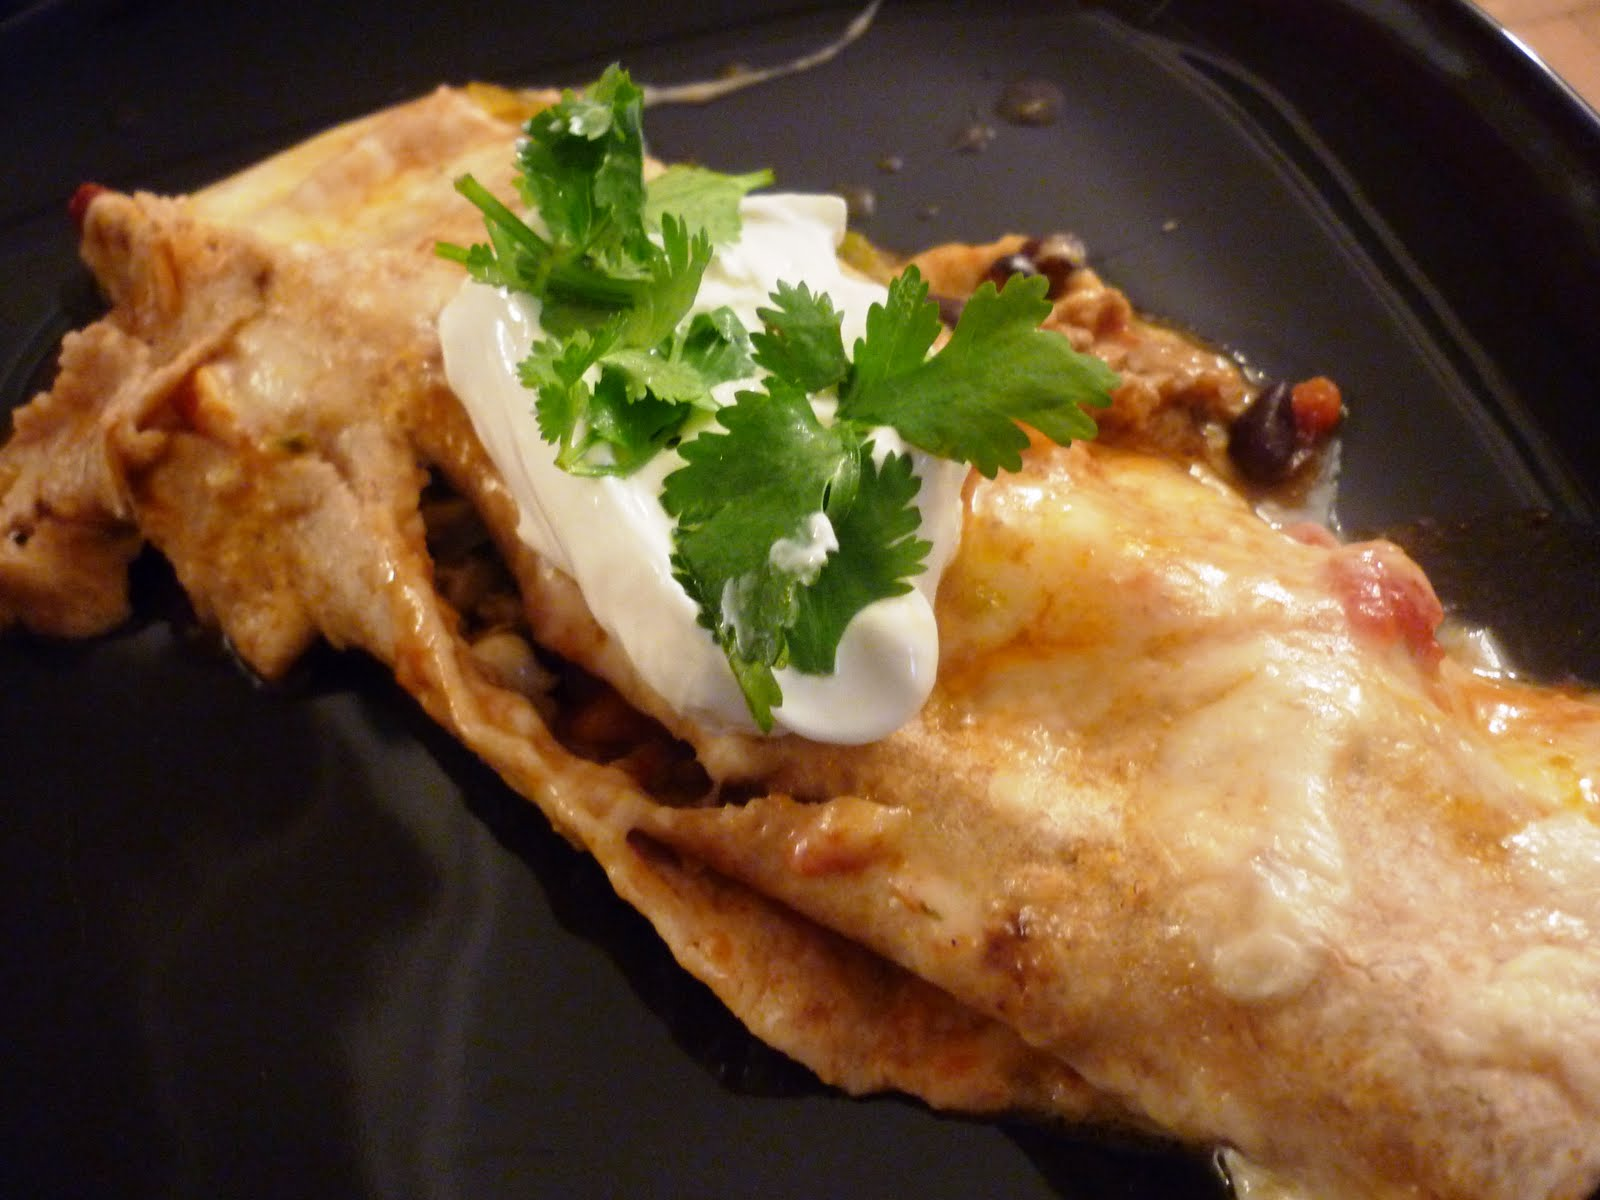 Good Looking Home Cooking: Turkey and Black Bean Enchiladas